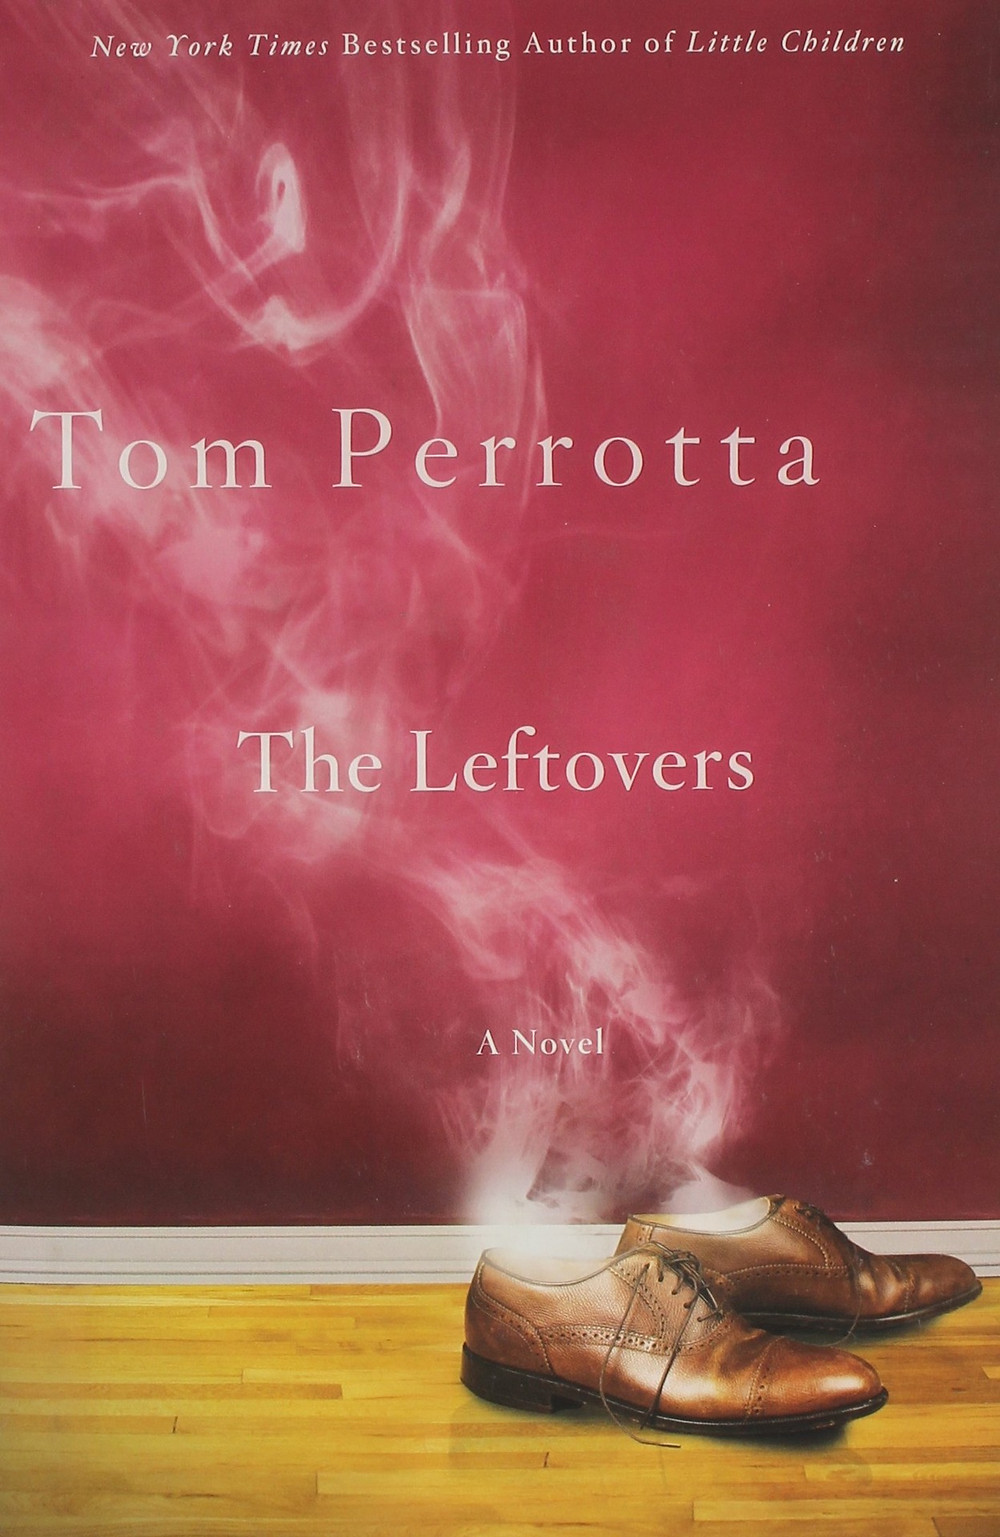 The Leftovers by Tom Perrotta (Author). The Book Slut book reviews, thebooksglut Friday debrief. A New York Times Notable Book for 2011  A Washington Post Notable Fiction Book for 2011 The New York Times bestseller now in paperback--A thought-provoking engrossing novel about love, connection, and loss from the author of The Abstinence Teacher and Little Children What if your life was upended in an instant? What if your spouse or your child disappeared right in front of your eyes? Was it the Rapture or something even more difficult to explain? How would you rebuild your life in the wake of such a devastating event? These are the questions confronting the bewildered citizens of Mapleton, a formerly comfortable suburban community that lost over a hundred people in the Sudden Departure. Kevin Garvey, the new mayor, wants to move forward, to bring a sense of renewed hope and purpose to his traumatized neighbors, even as his own family disintegrates. His wife, Laurie, has left him to enlist in the Guilty Remnant, a homegrown cult whose members take a vow of silence but haunt the town's streets as living reminders of God's judgment. His son, Tom, is gone, too, dropping out of college to follow a crooked prophet who calls himself Holy Wayne. Only his teenaged daughter, Jill, remains, and she's definitely not the sweet A student she used to be. Through the prism of a single family, Perrotta illuminates a familiar America made strange by grief and apocalyptic anxiety. Tom Perrotta's The Leftovers is a powerful and deeply moving book about regular people struggling to hold onto a belief in their futures. Product Details Price $16.99  $15.63 Publisher St. Martin's Griffin Publish Date May 22, 2012 Pages 355 Dimensions 5.52 X 1.03 X 8.24 inches | 0.73 pounds Language English Type Paperback EAN/UPC 9780312363550 BISAC Categories: Literary Science Fiction - General